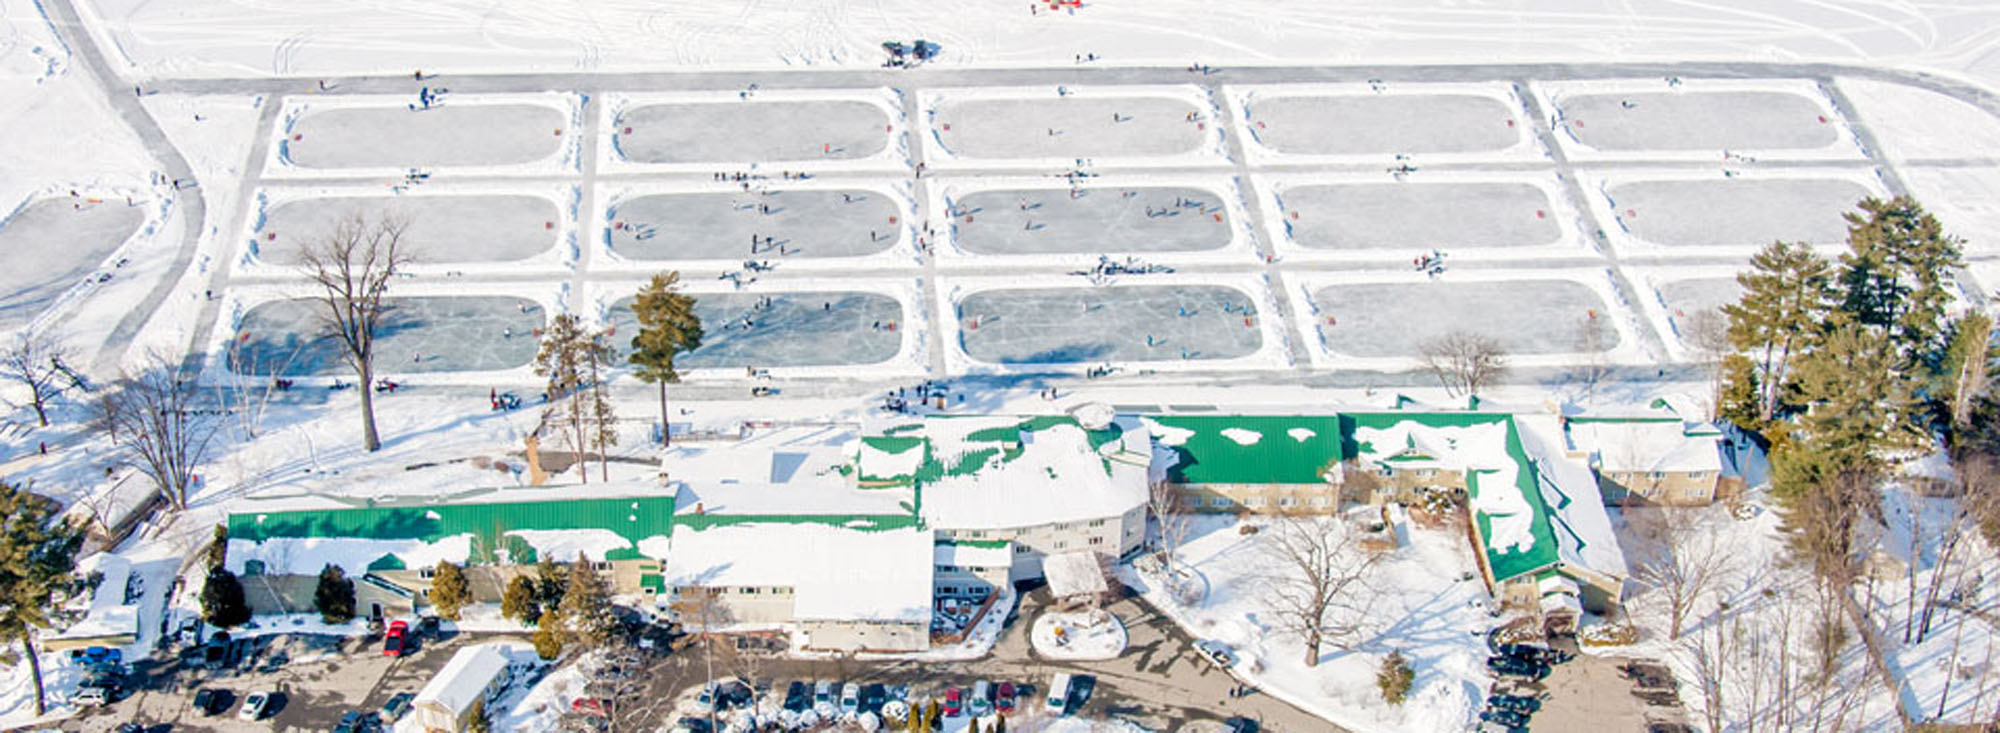 Aerial View of Lake Morey Resort Pond Hockey Rinks